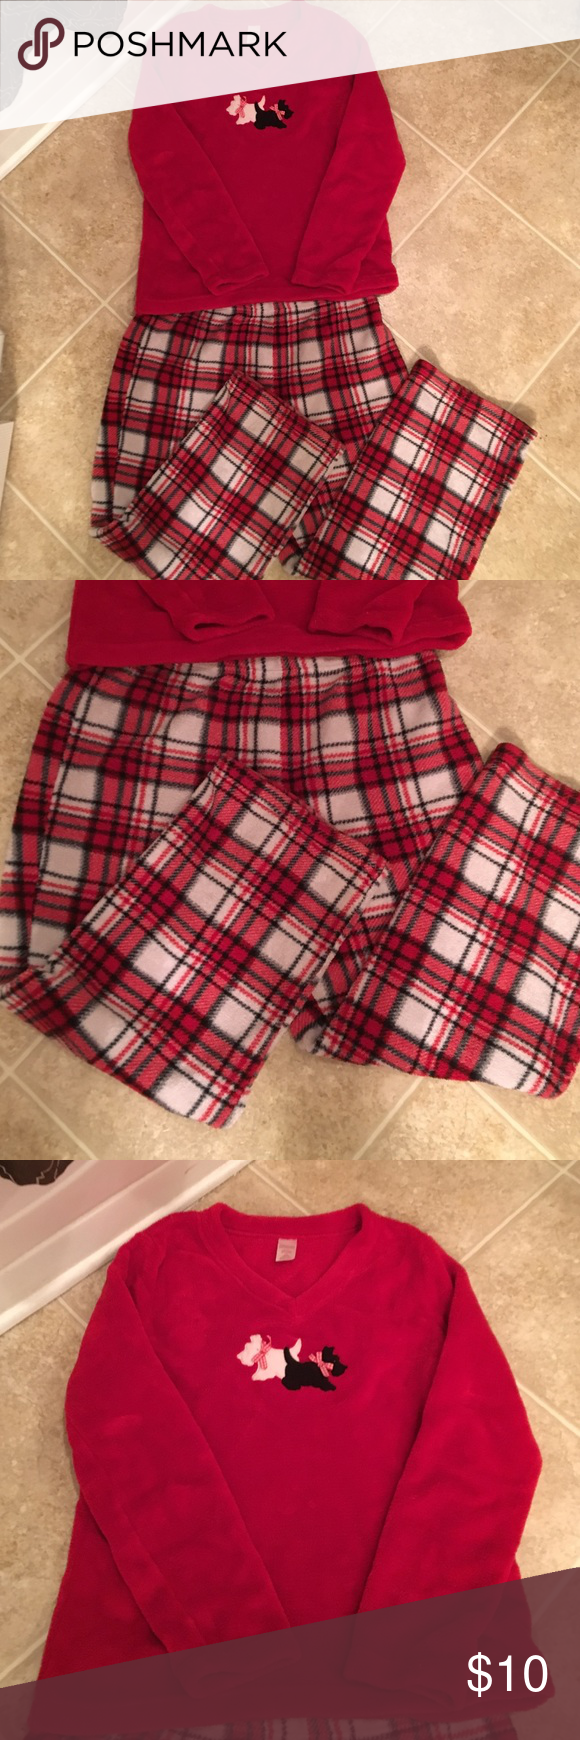 Pajamas Ladies Ladies Cozy Warm Size L 12-14 Size Large 12-14 Pajamas Cute for Christmas ;) with Scotties on top so cute for doggie lovers  other Intimates & Sleepwear Pajamas